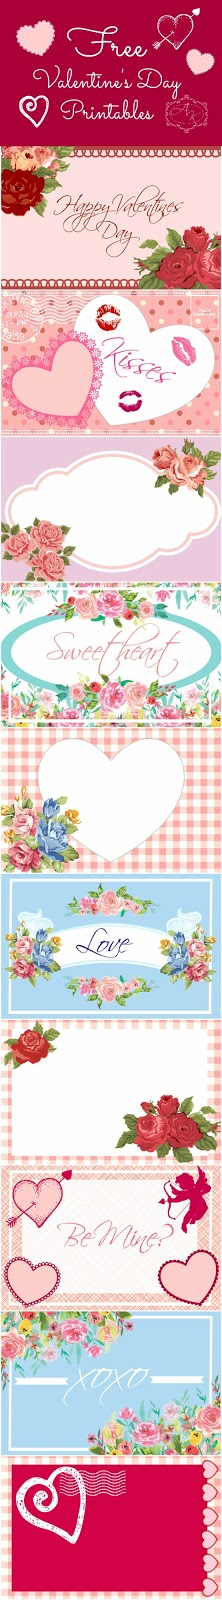 Free Valentines Day printable cards. Cute Valentines ideas. MamasGoneCrafty.com